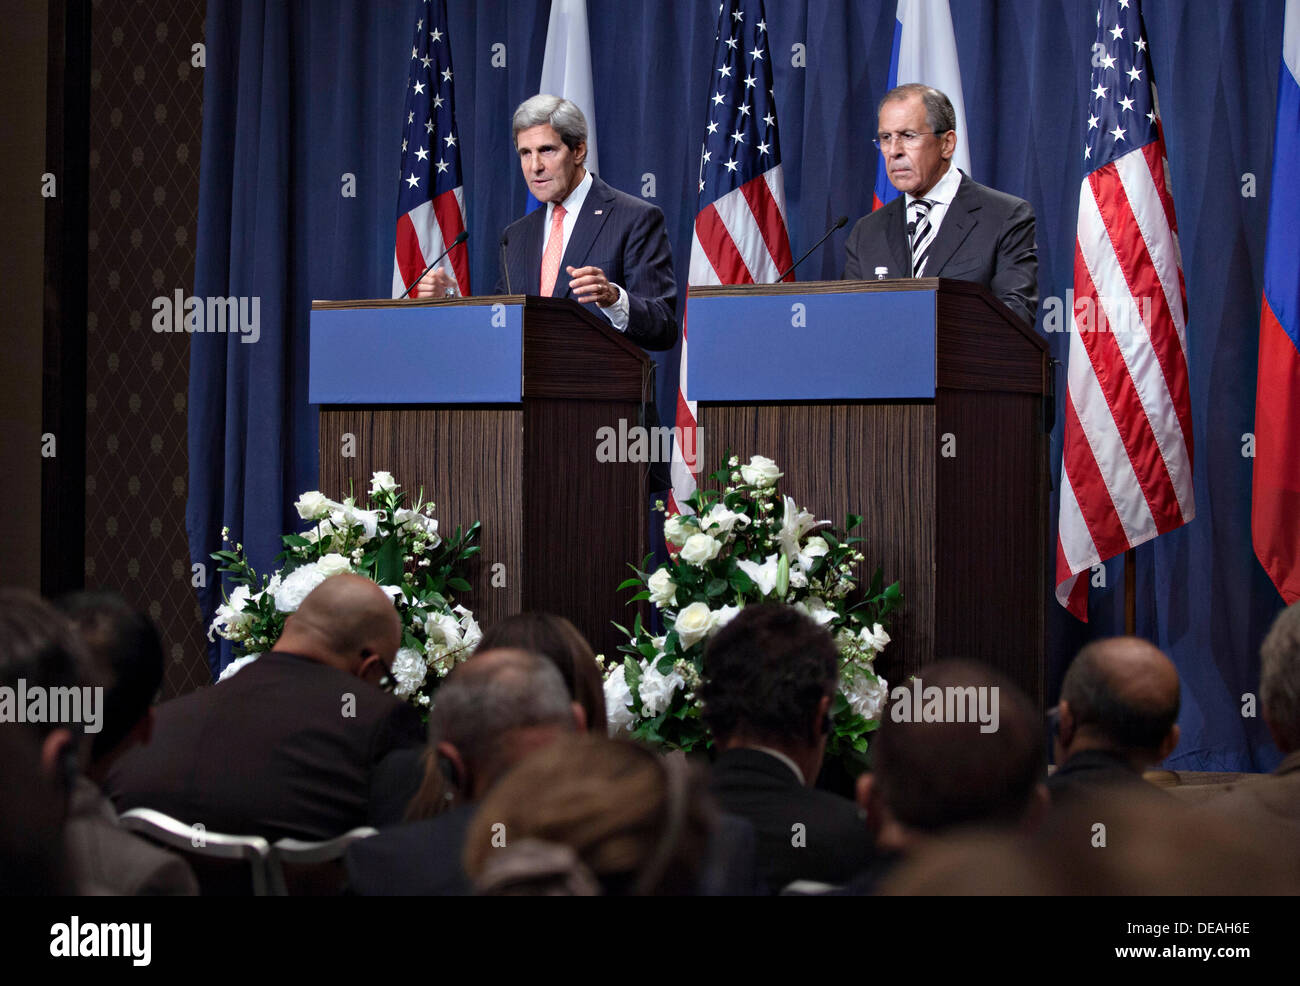 US Secretary of State John Kerry and Russian Foreign Minister Sergey Lavrov hold a news conference after they finalized a framework for the elimination for Syrian chemical weapons September 14, 2013 in Geneva, Switzerland. - Stock Image